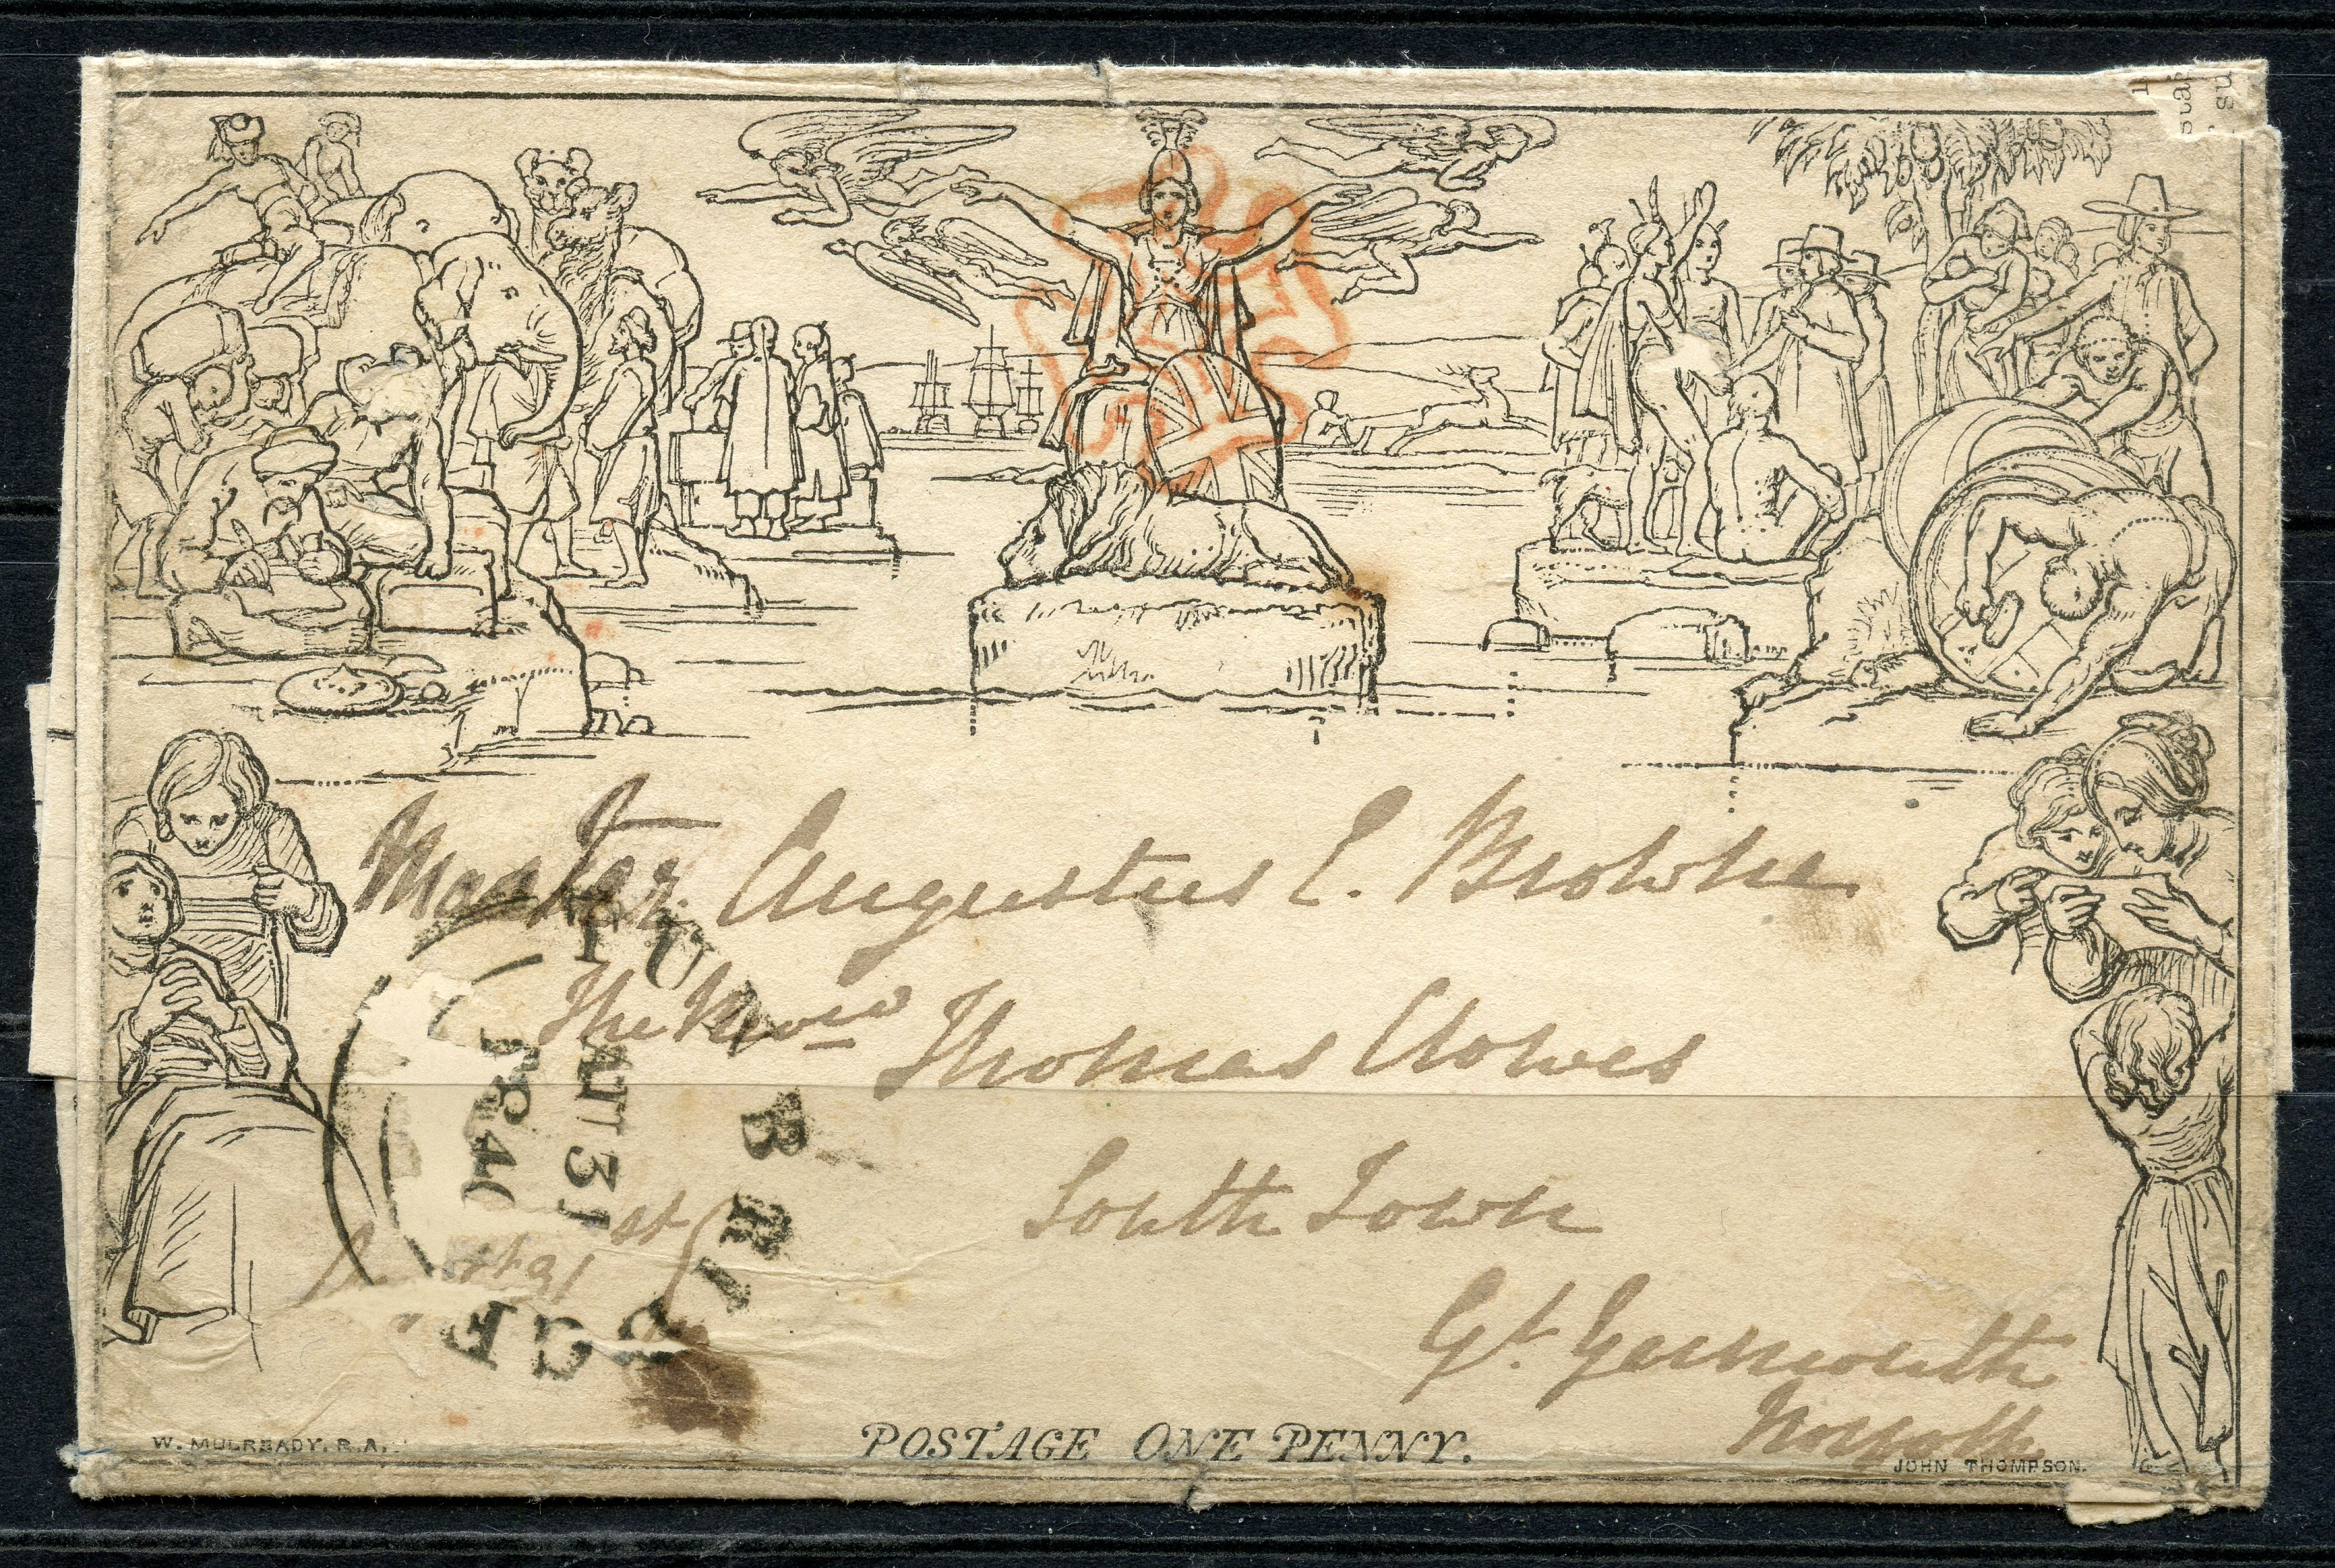 1840 Mulready August 1d letter sheet from Tonbridge to Great Yarmouth cancelled with good red MX.